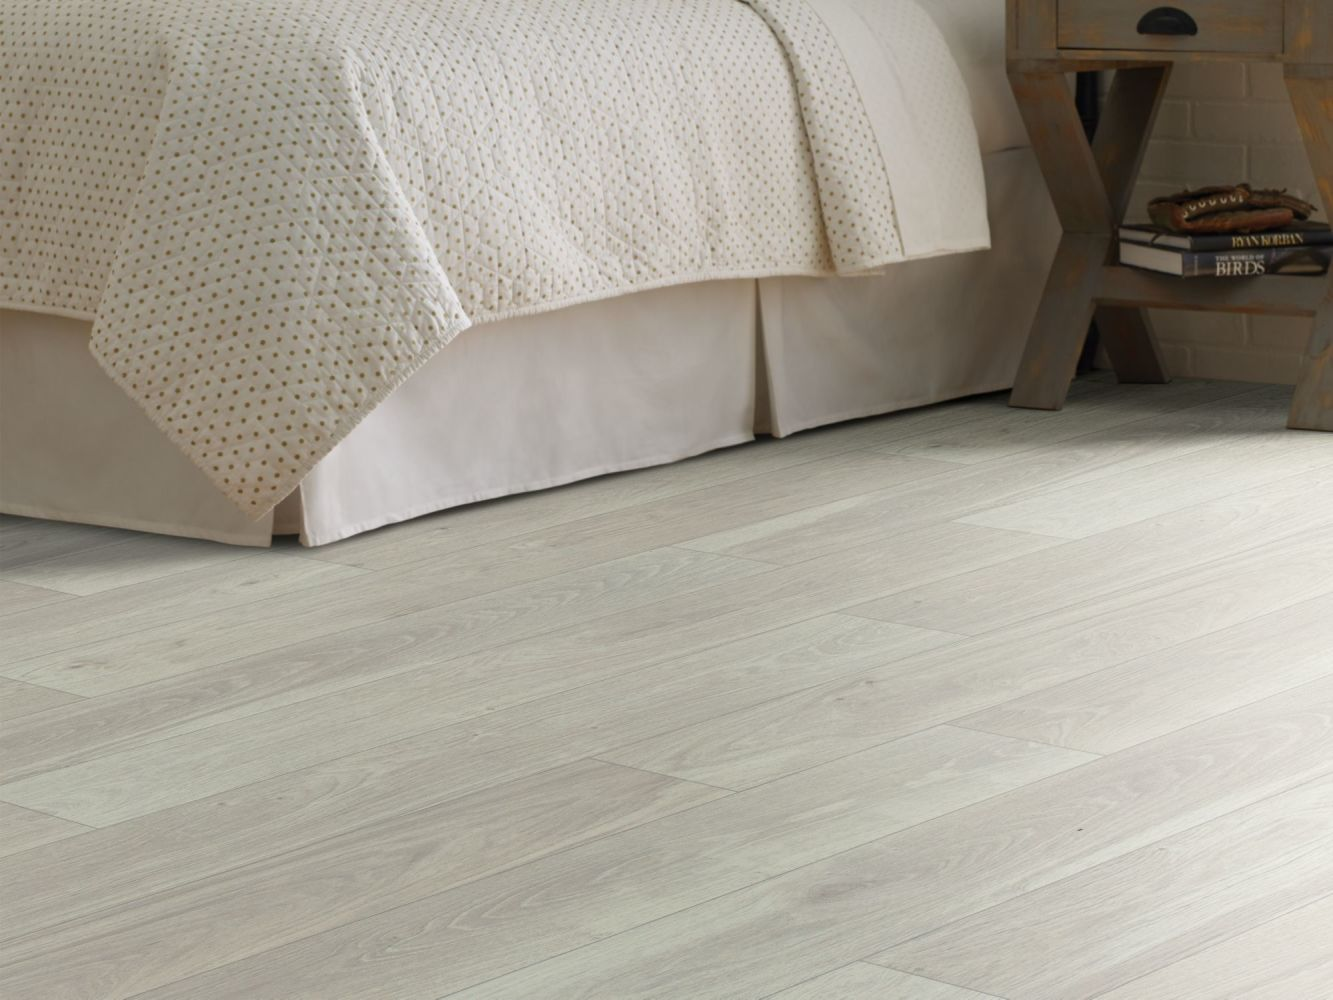 Shaw Floors Resilient Residential Sublime Vision Pegasus 01067_VG090